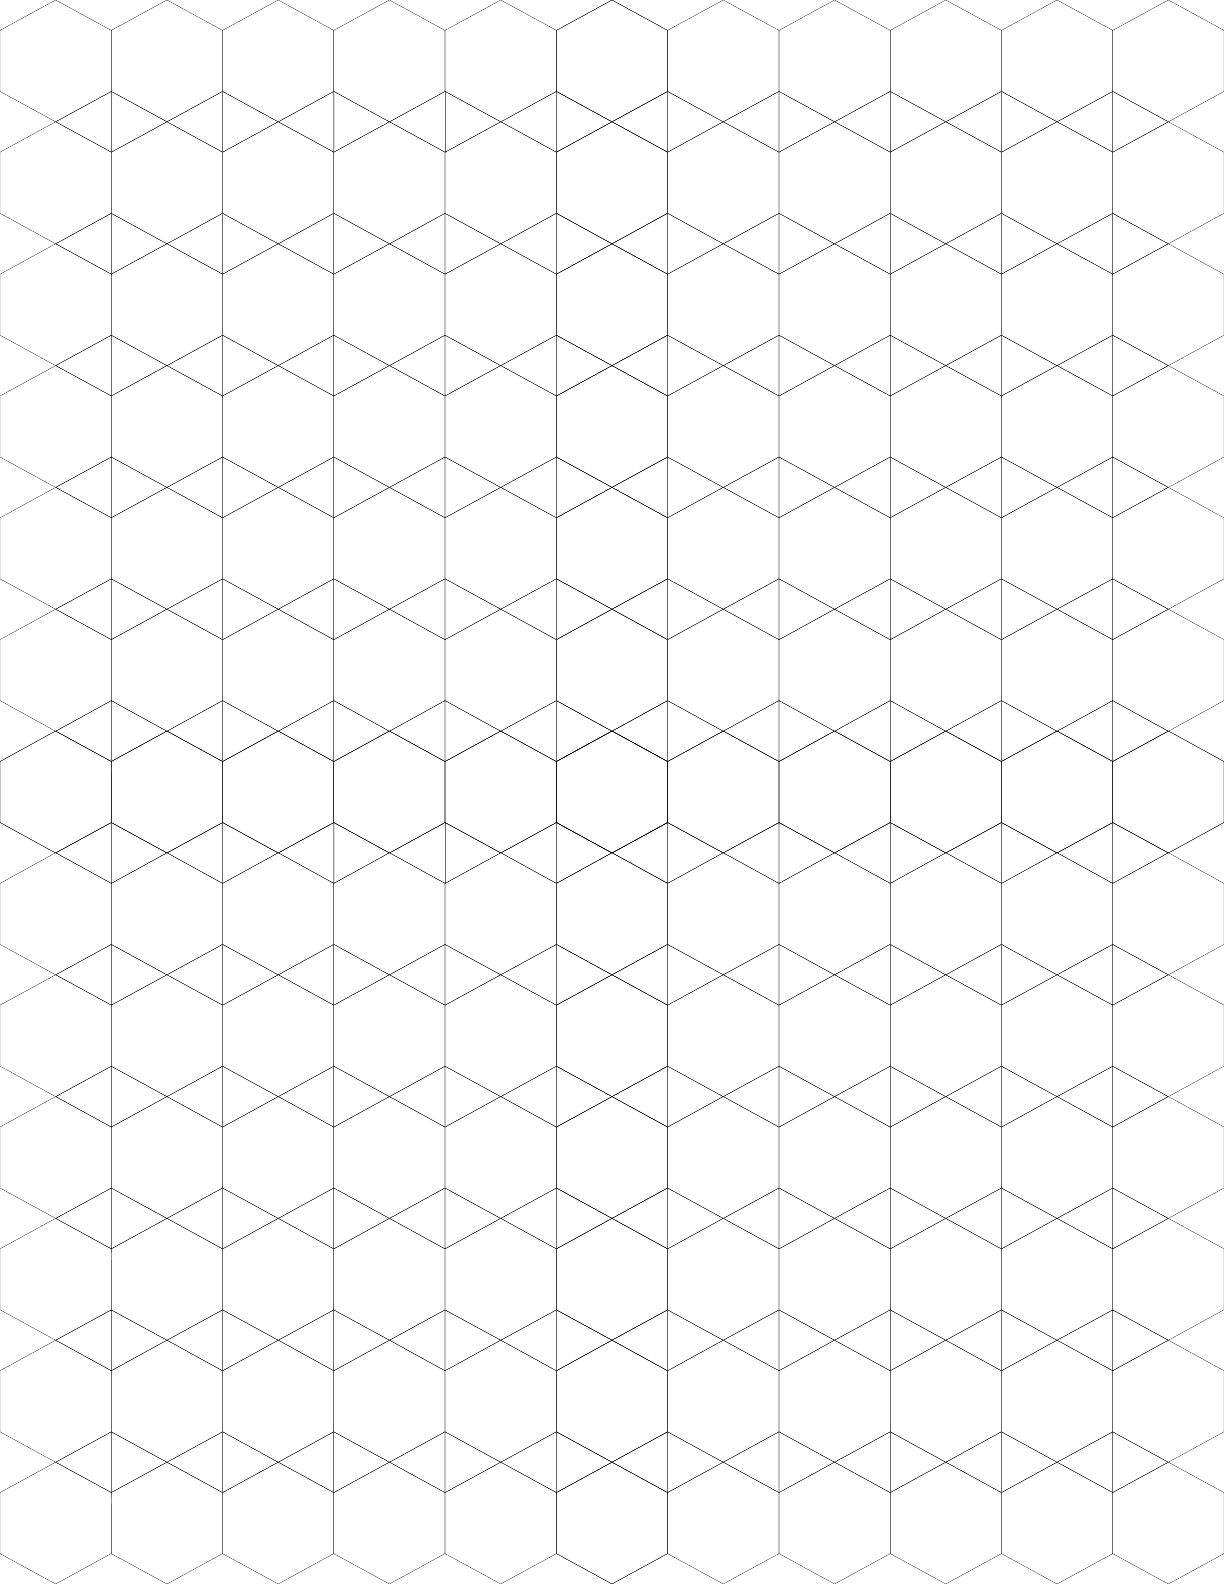 small tessellation graph paper  3 6 3 6 3 3 6 6  free download